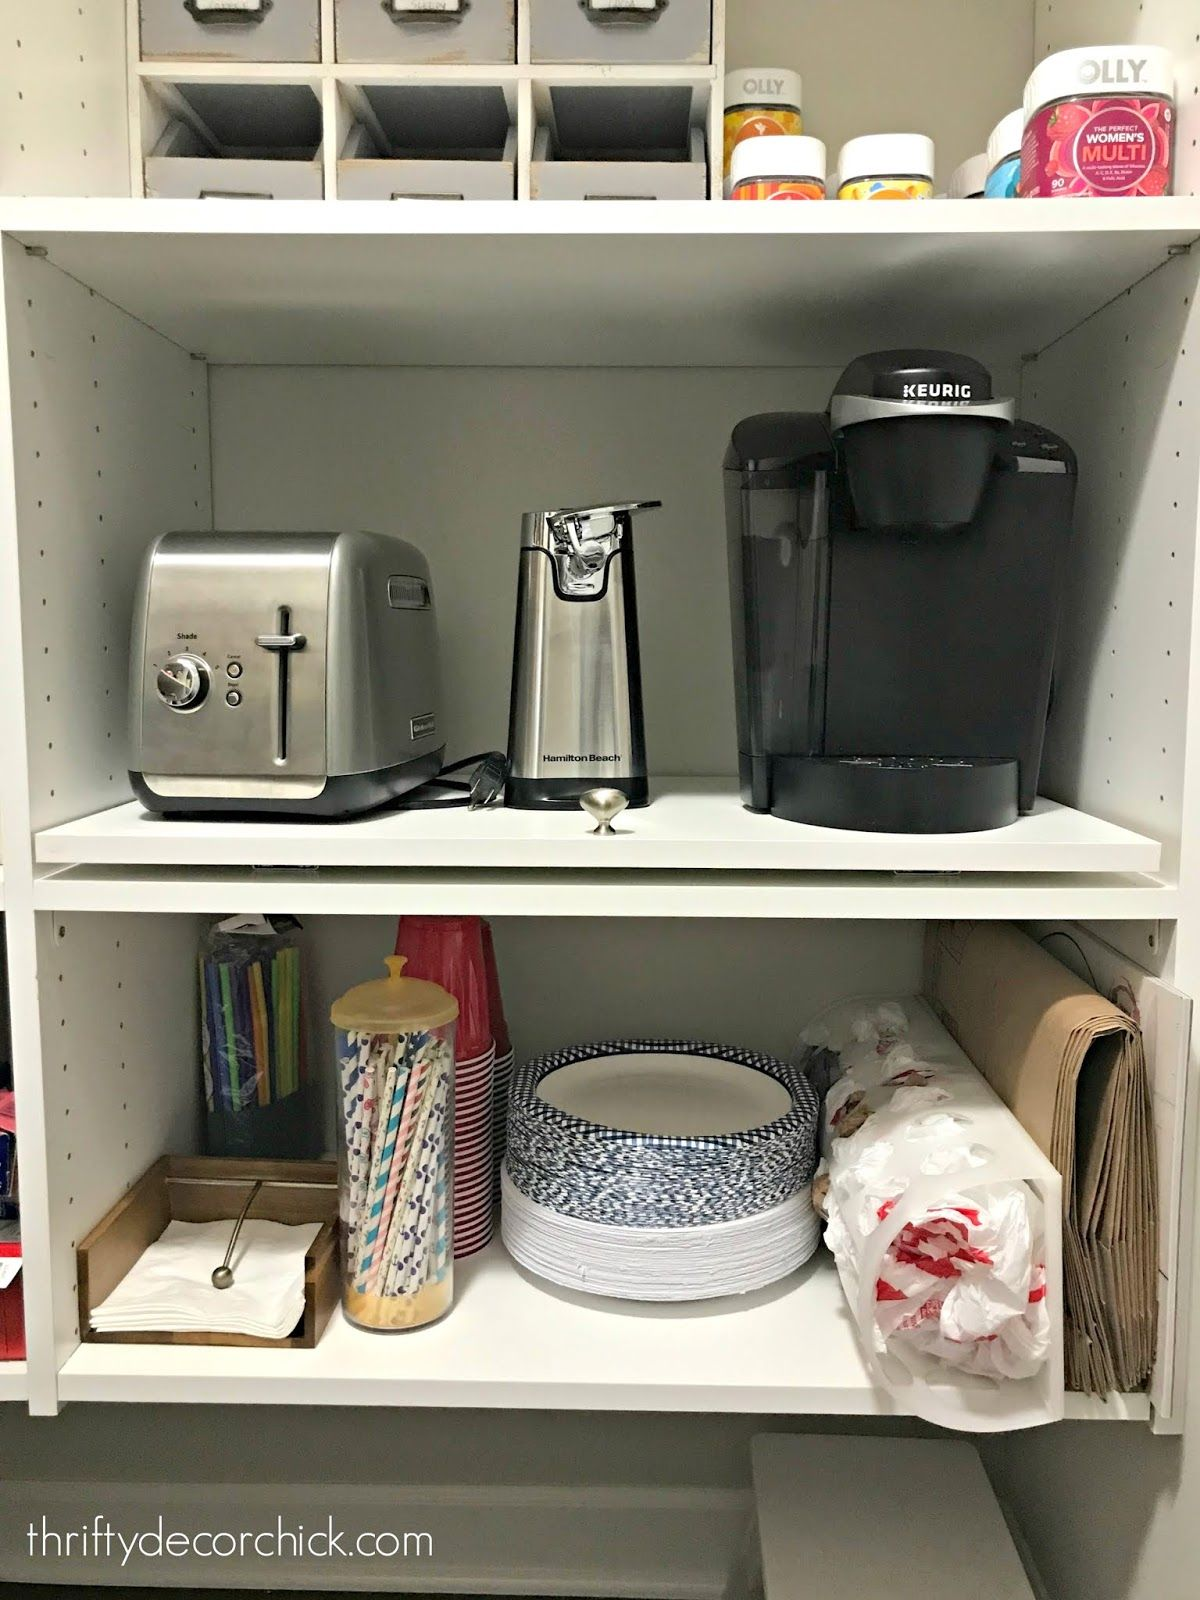 Do It Yourself Pull Out Shelf For Appliances In Pantry